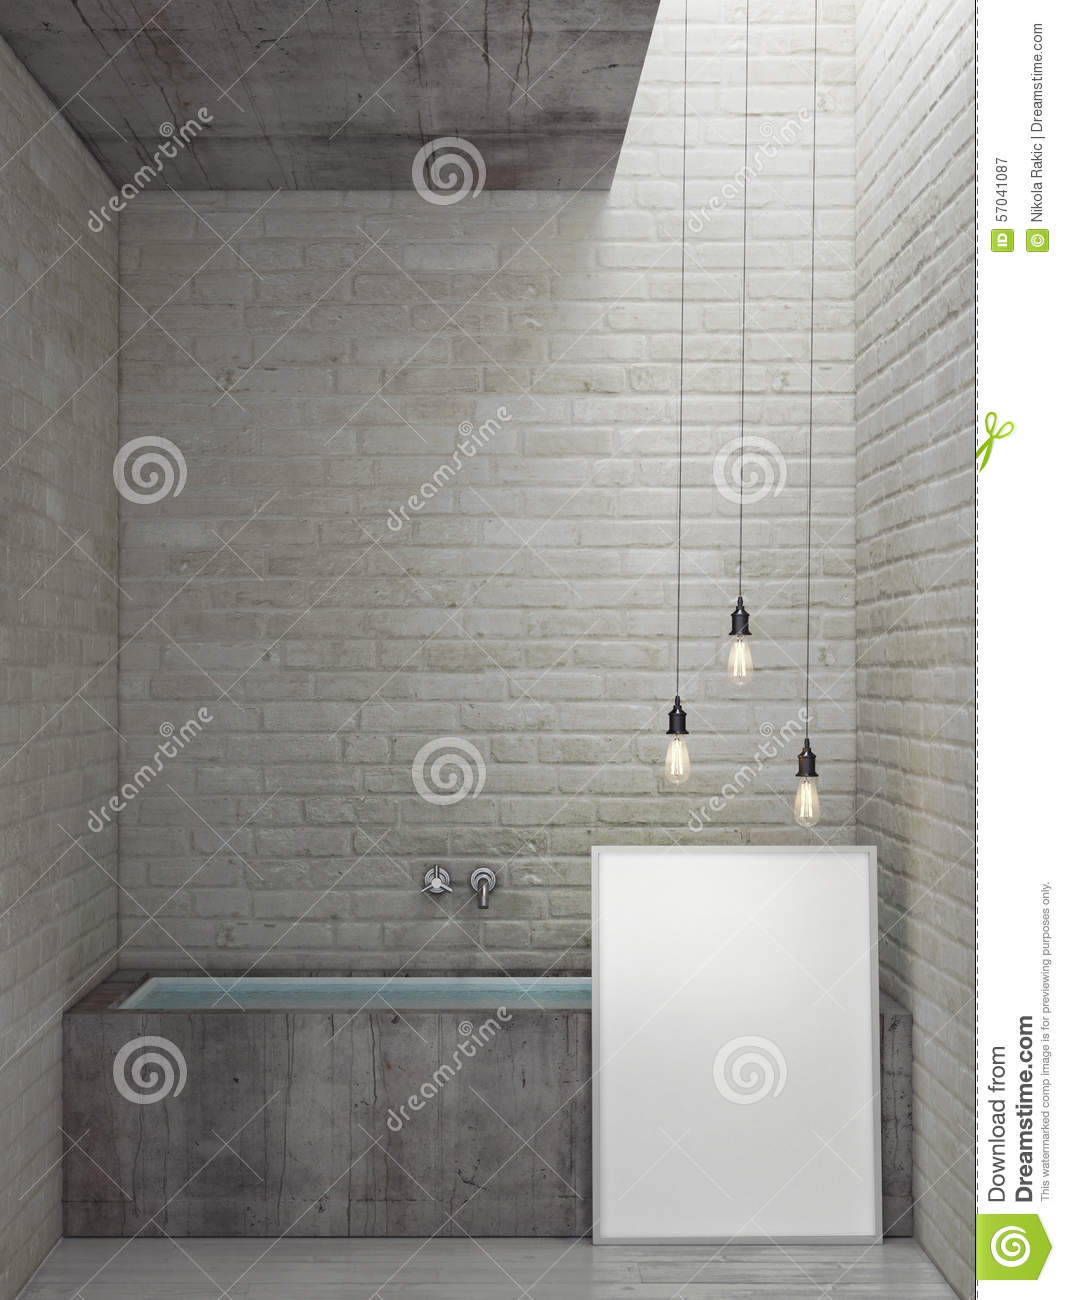 loft bathroom with mock up poster stock illustration image